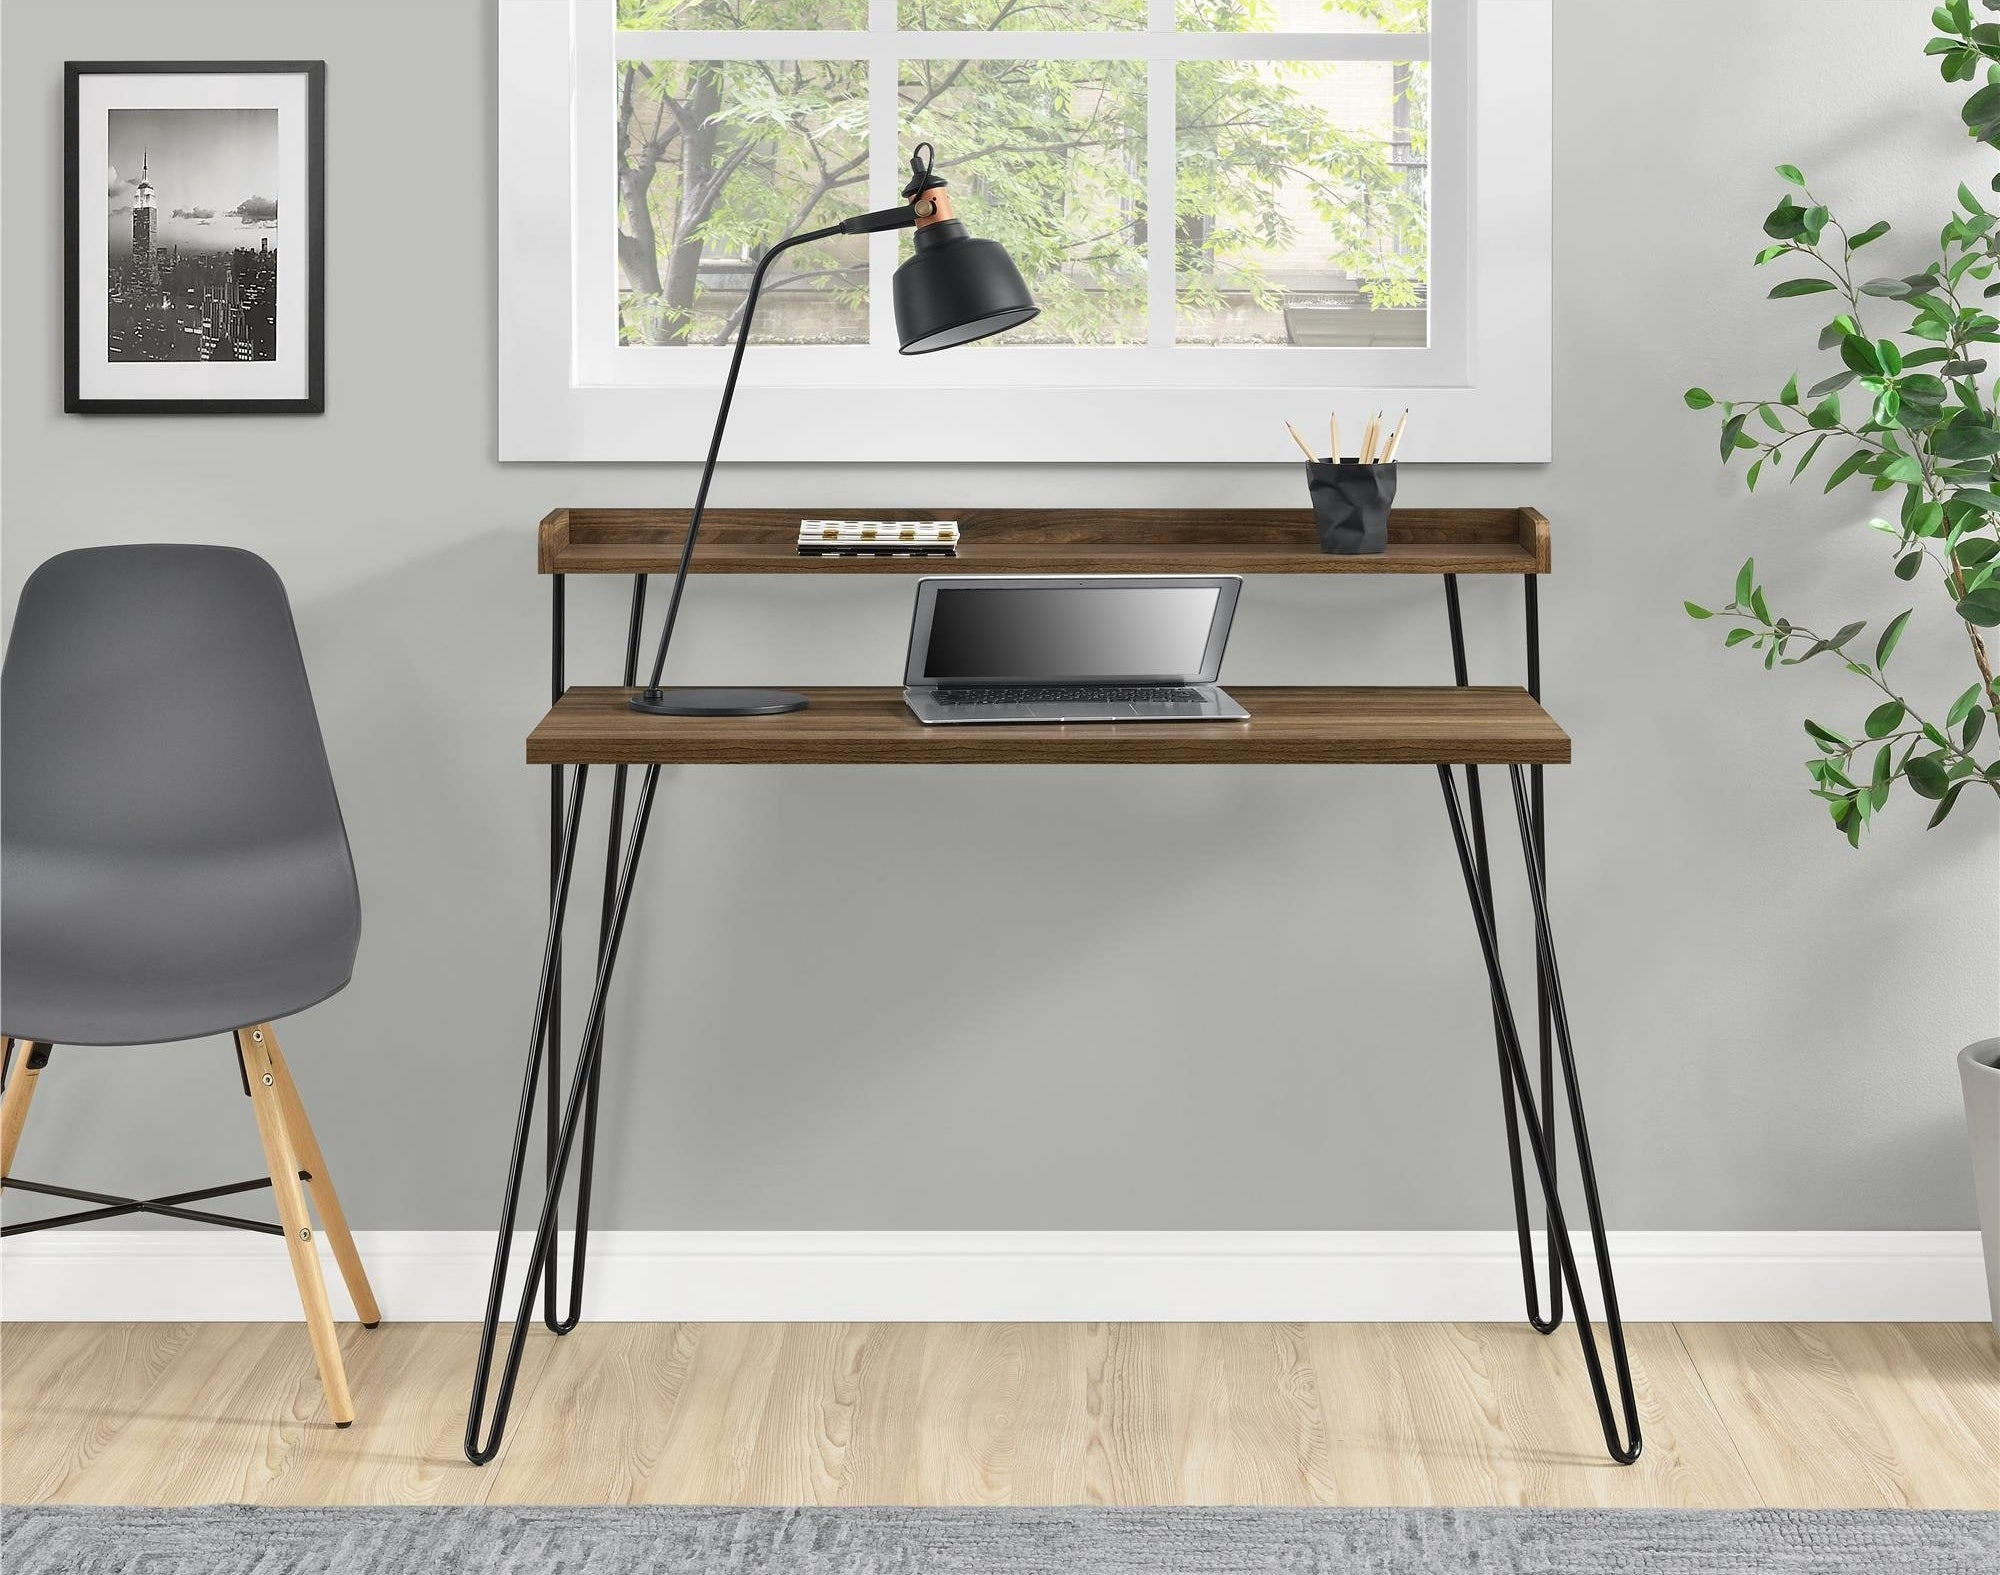 Brow wood desk with chair